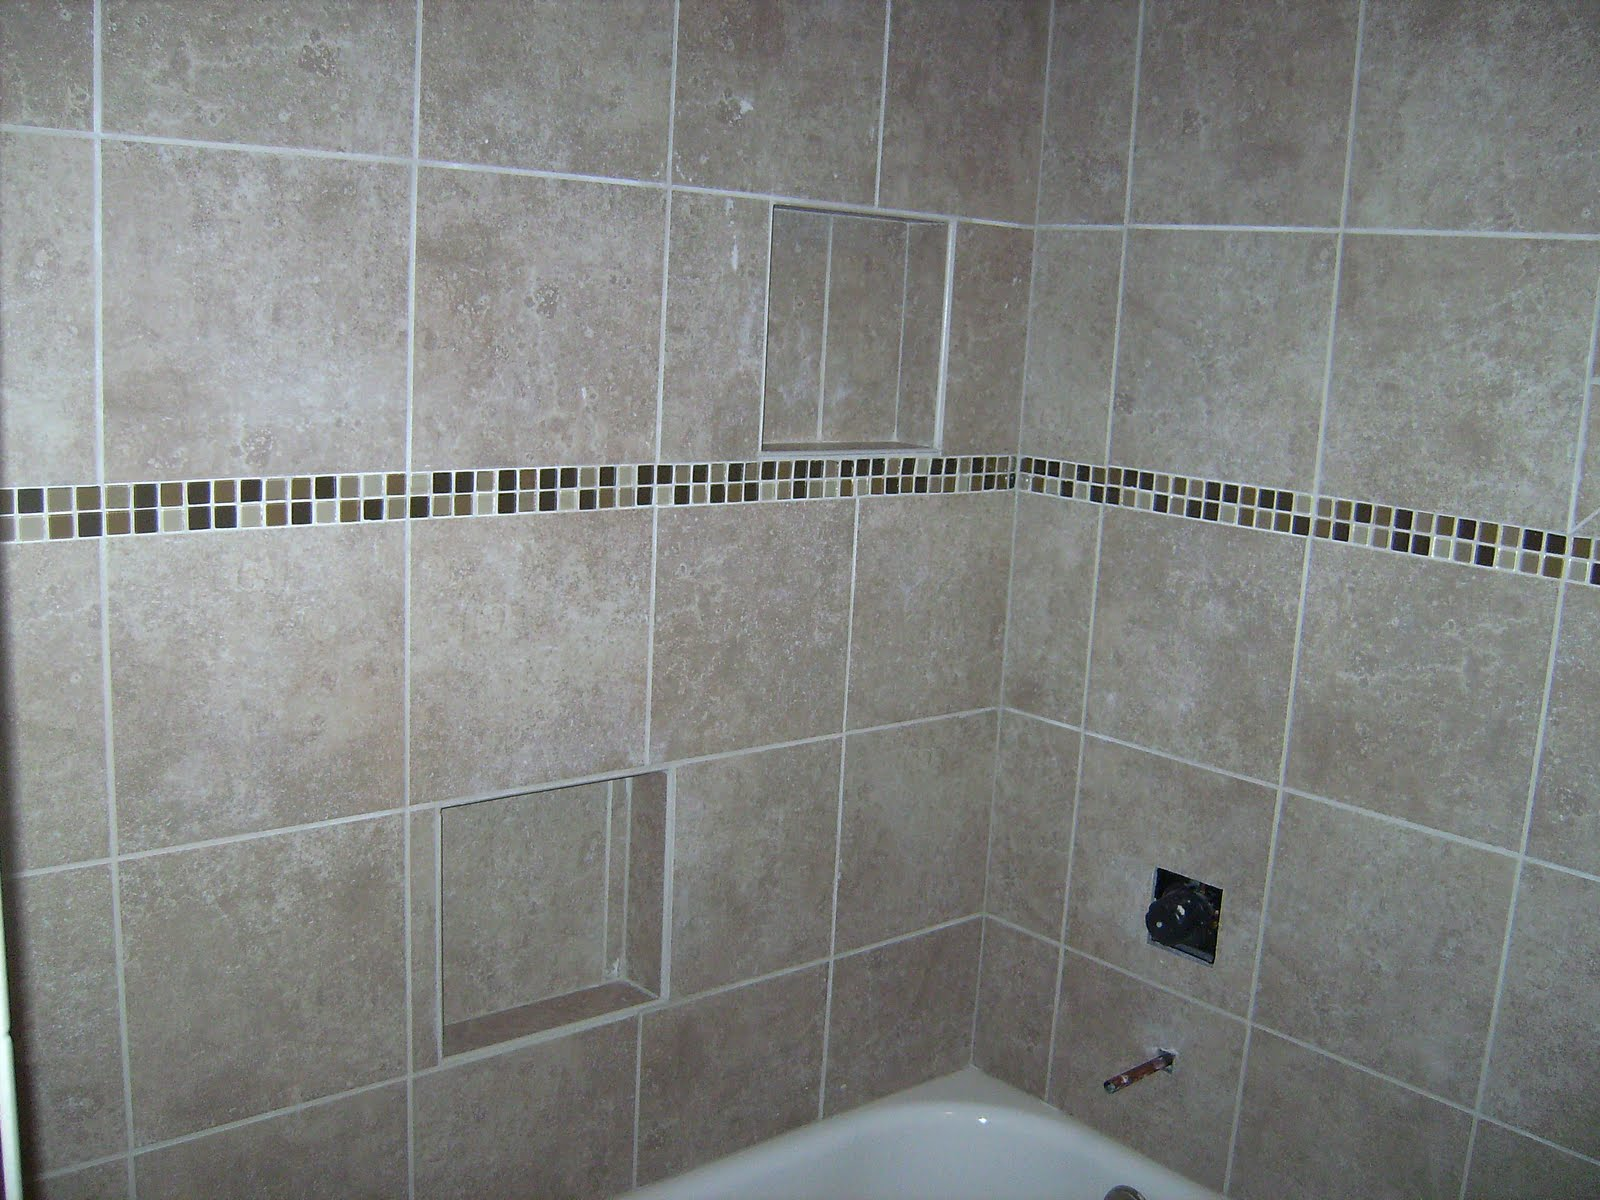 VINYL TILE IN BATHROOM BATHROOM TILE